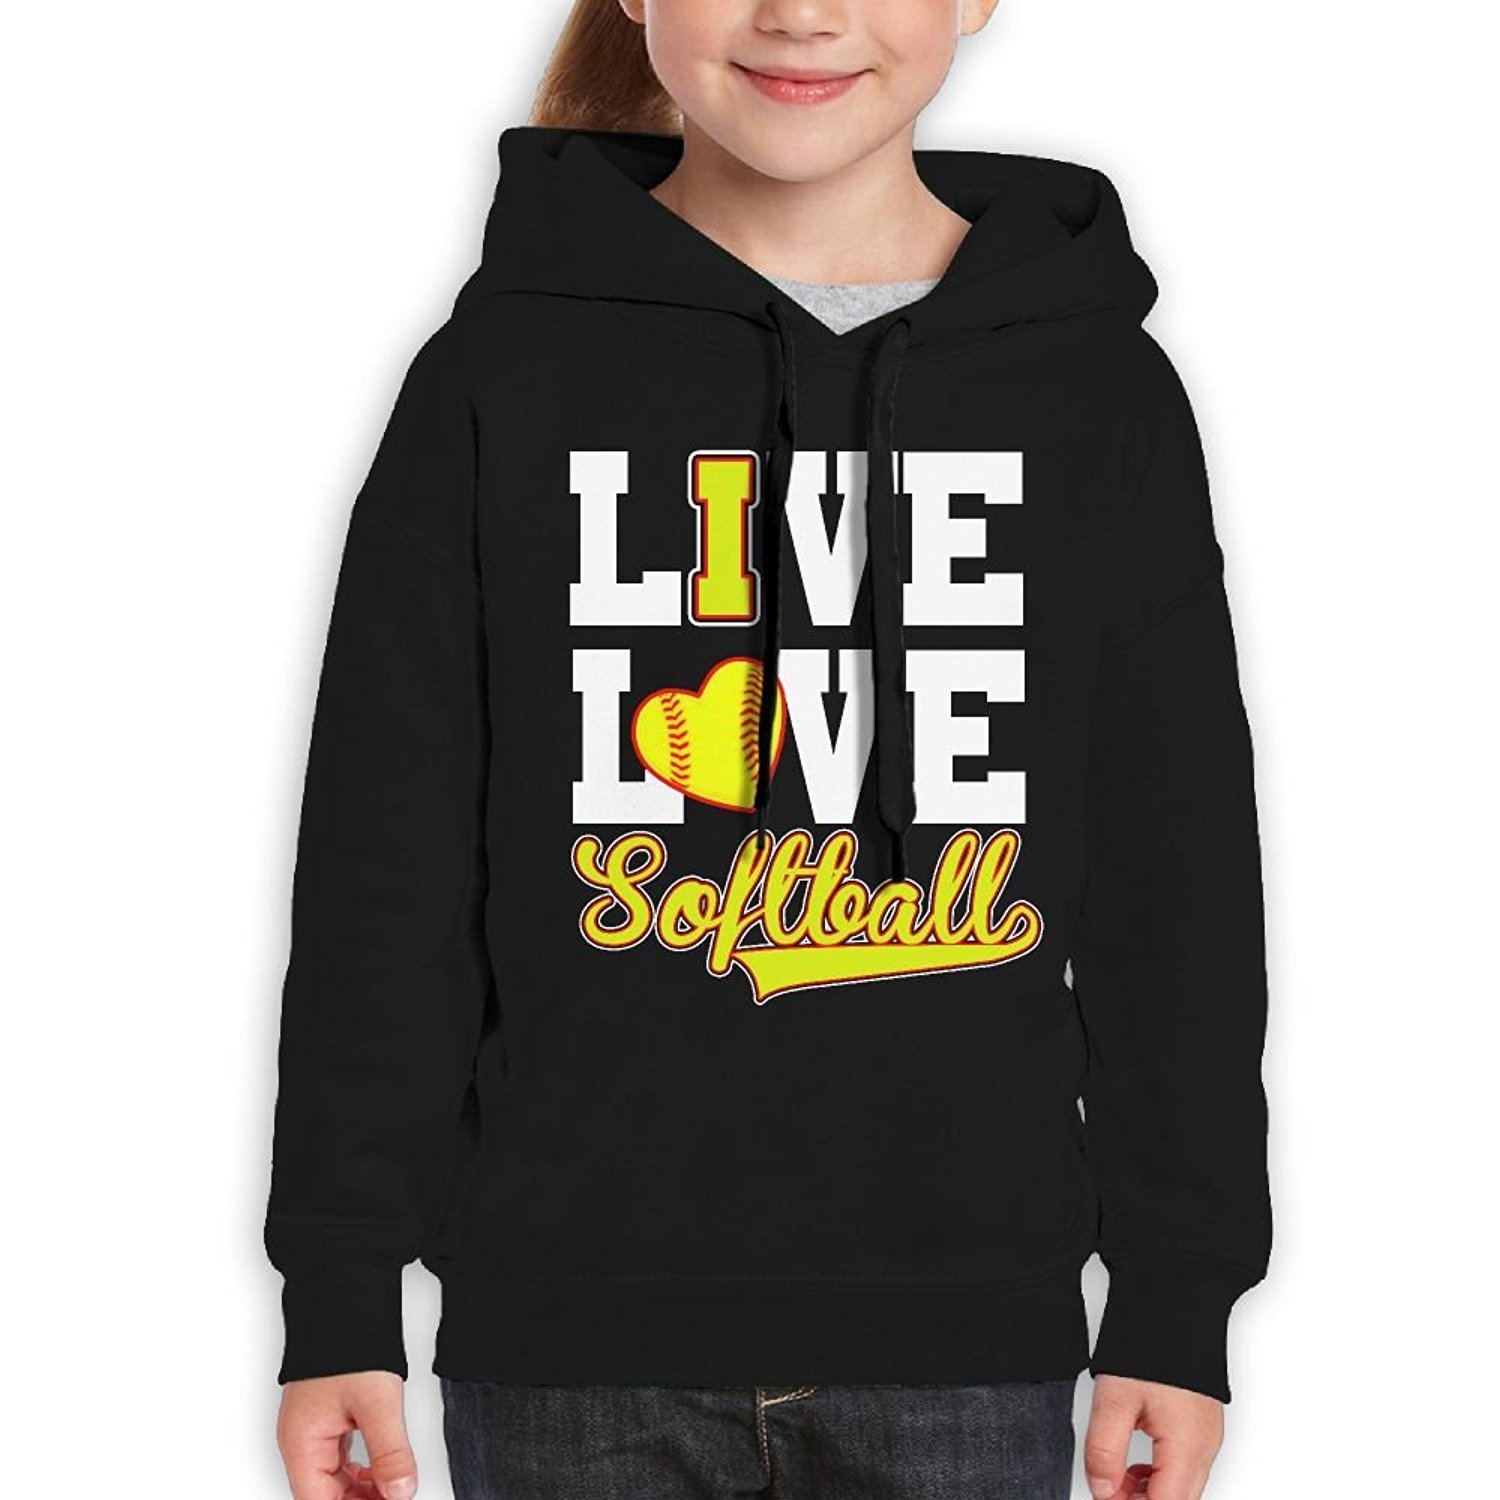 Starcleveland Teenager Pullover Hoodie Sweatshirt Live Love Softball Teen's Hooded For Boys Girls by Starcleveland (Image #1)